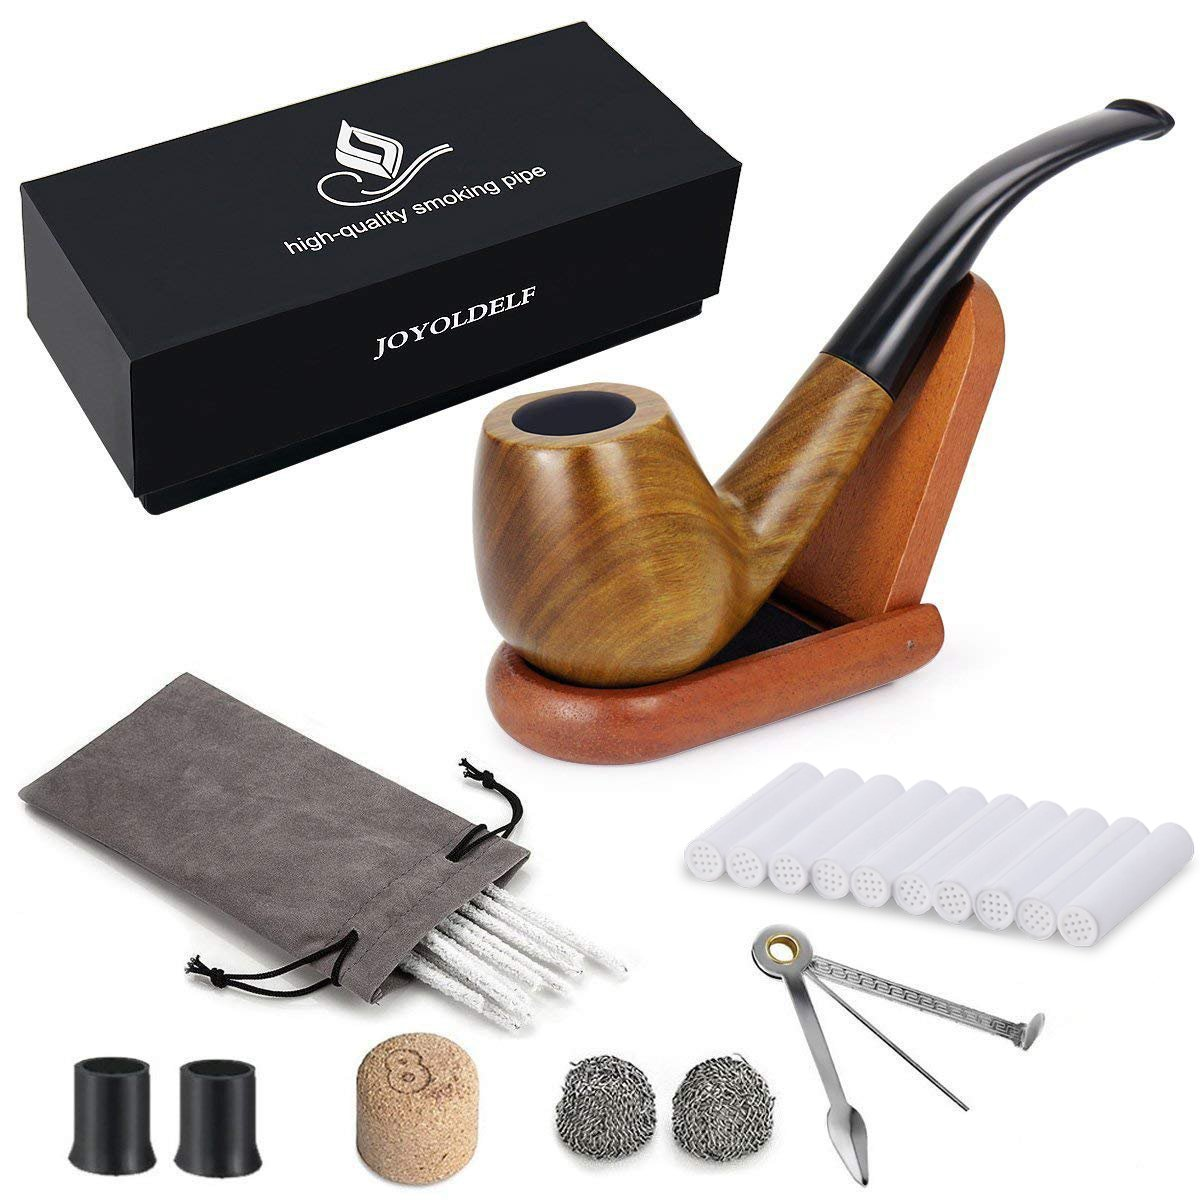 Joyoldelf Smoking Pipe Set with Wooden Stand 3-in-1 Pipe Scraper 10 Pipe Cleaners & Pipe Filters 2 Pipe Bits & Metal Balls Cork Knocker Bonus a Pipe Pouch